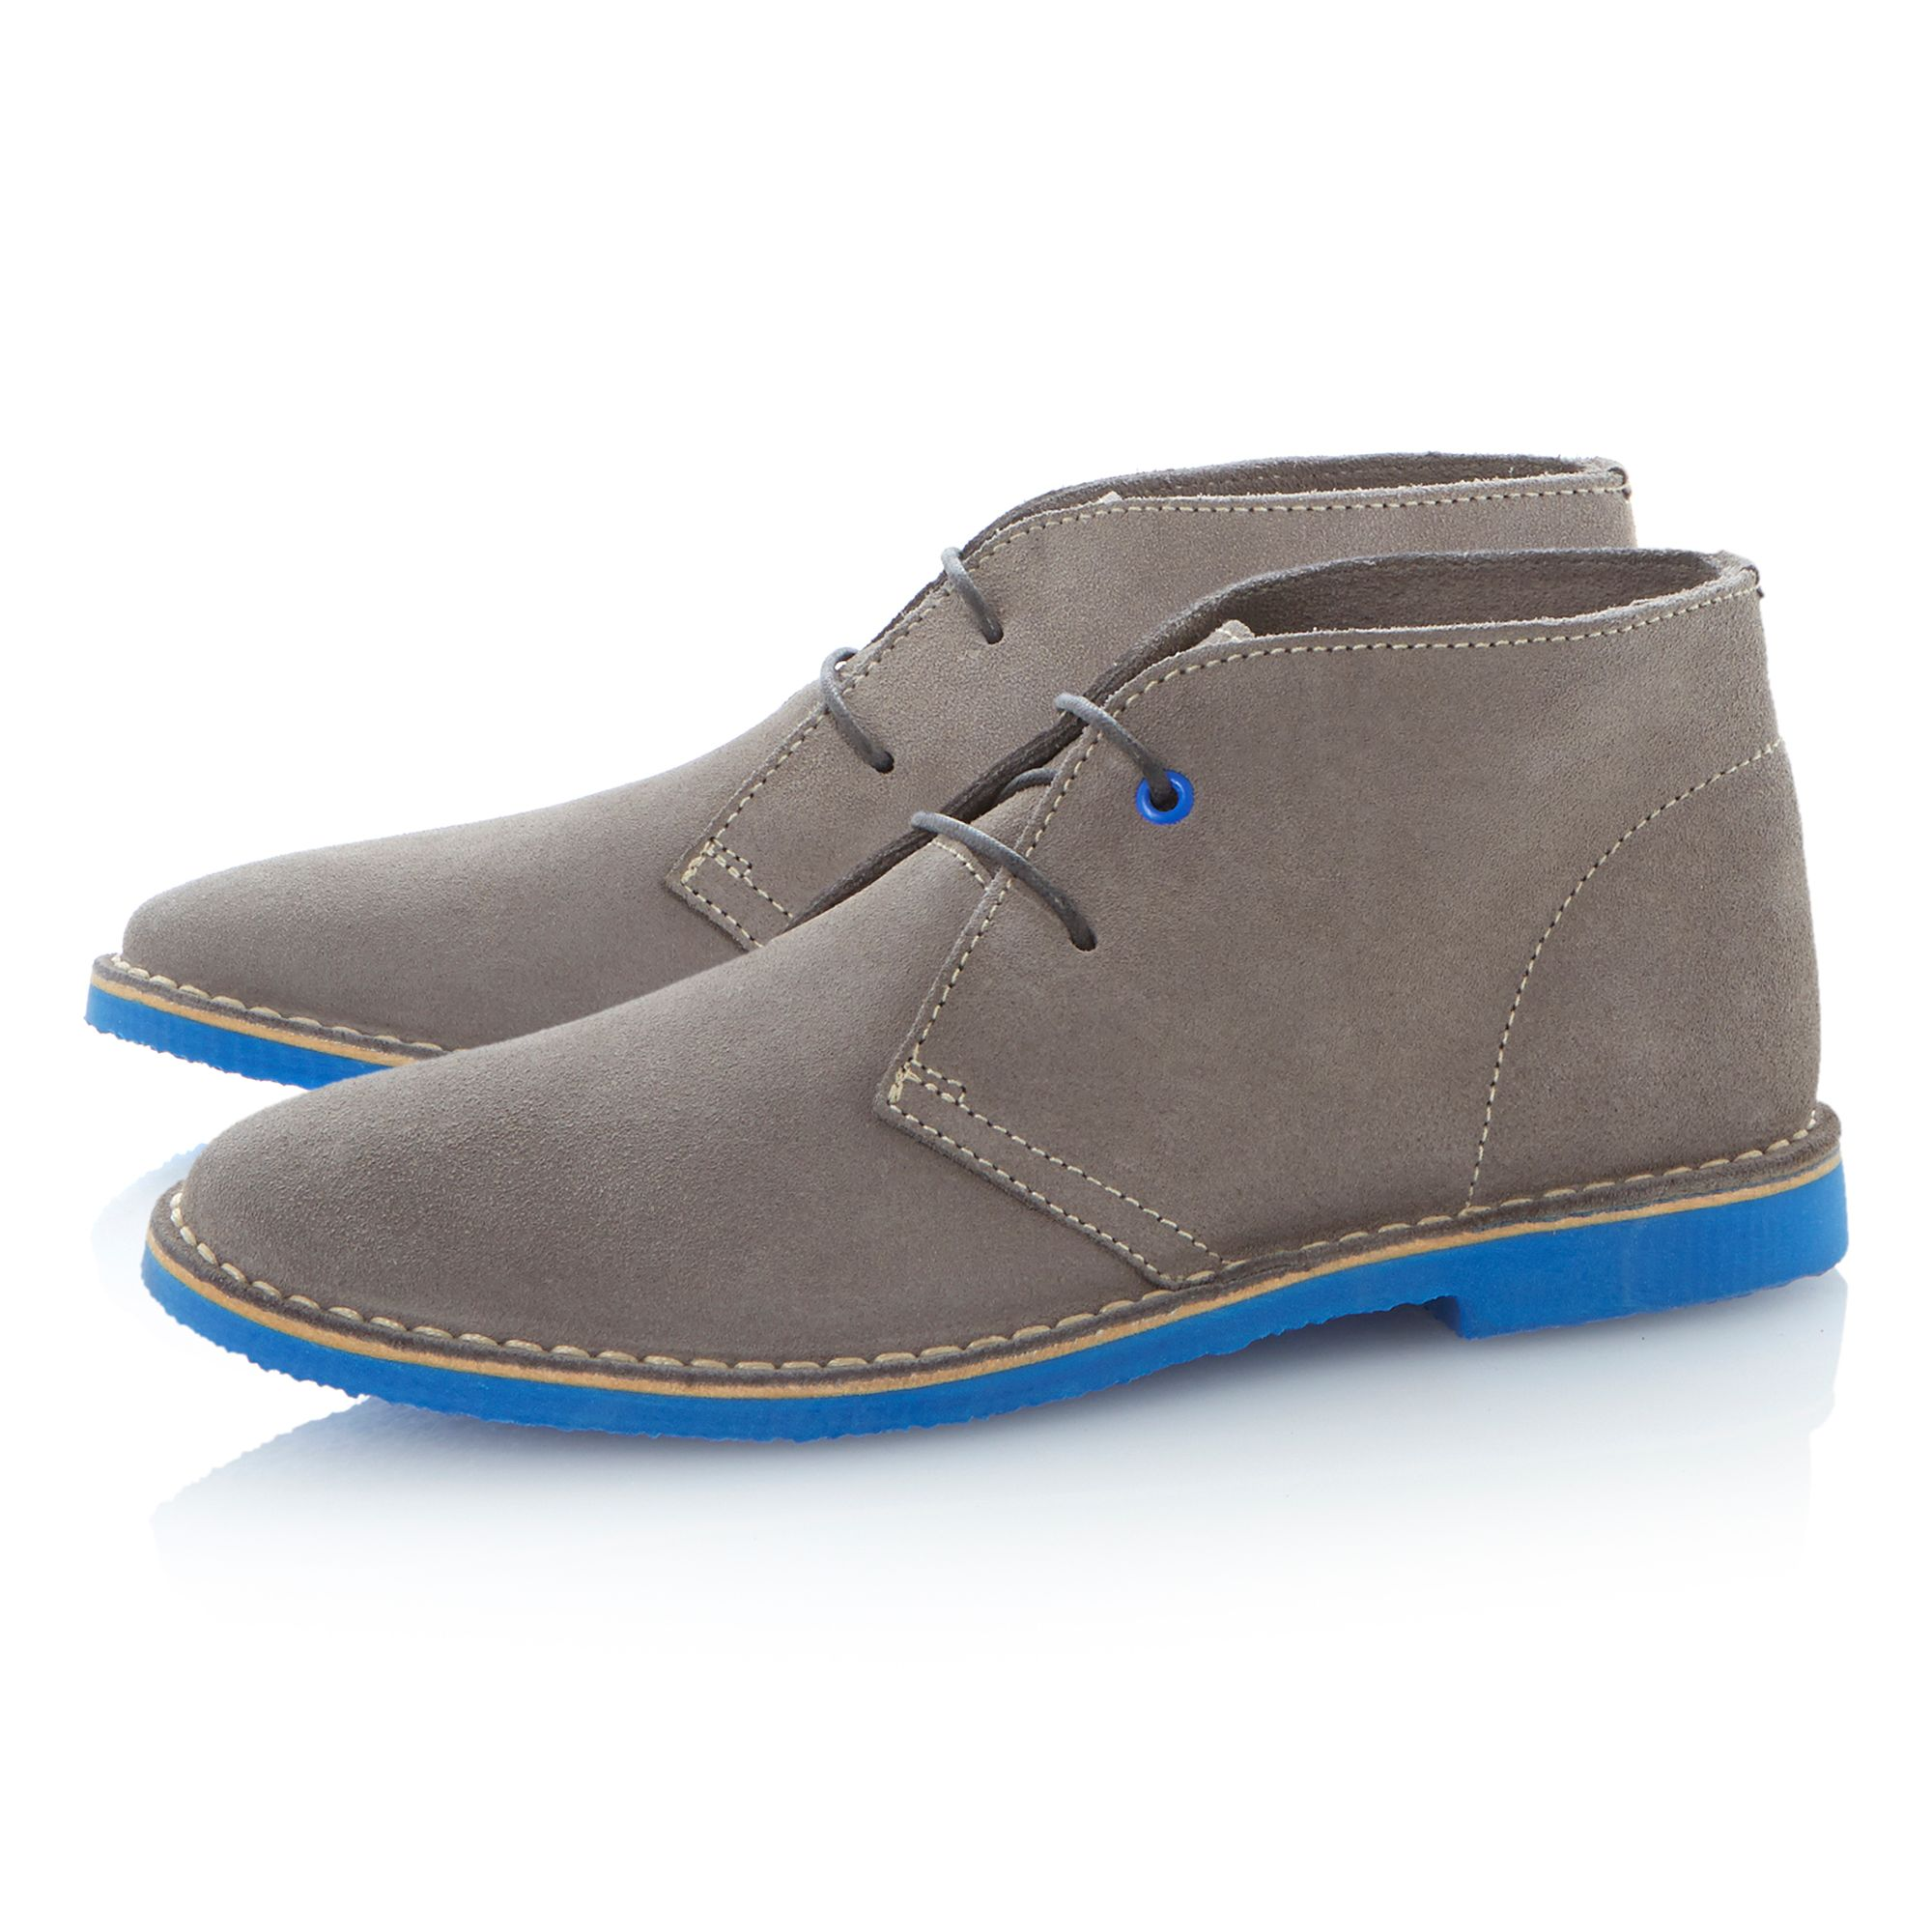 Clutz lace up coloured sole desert boots